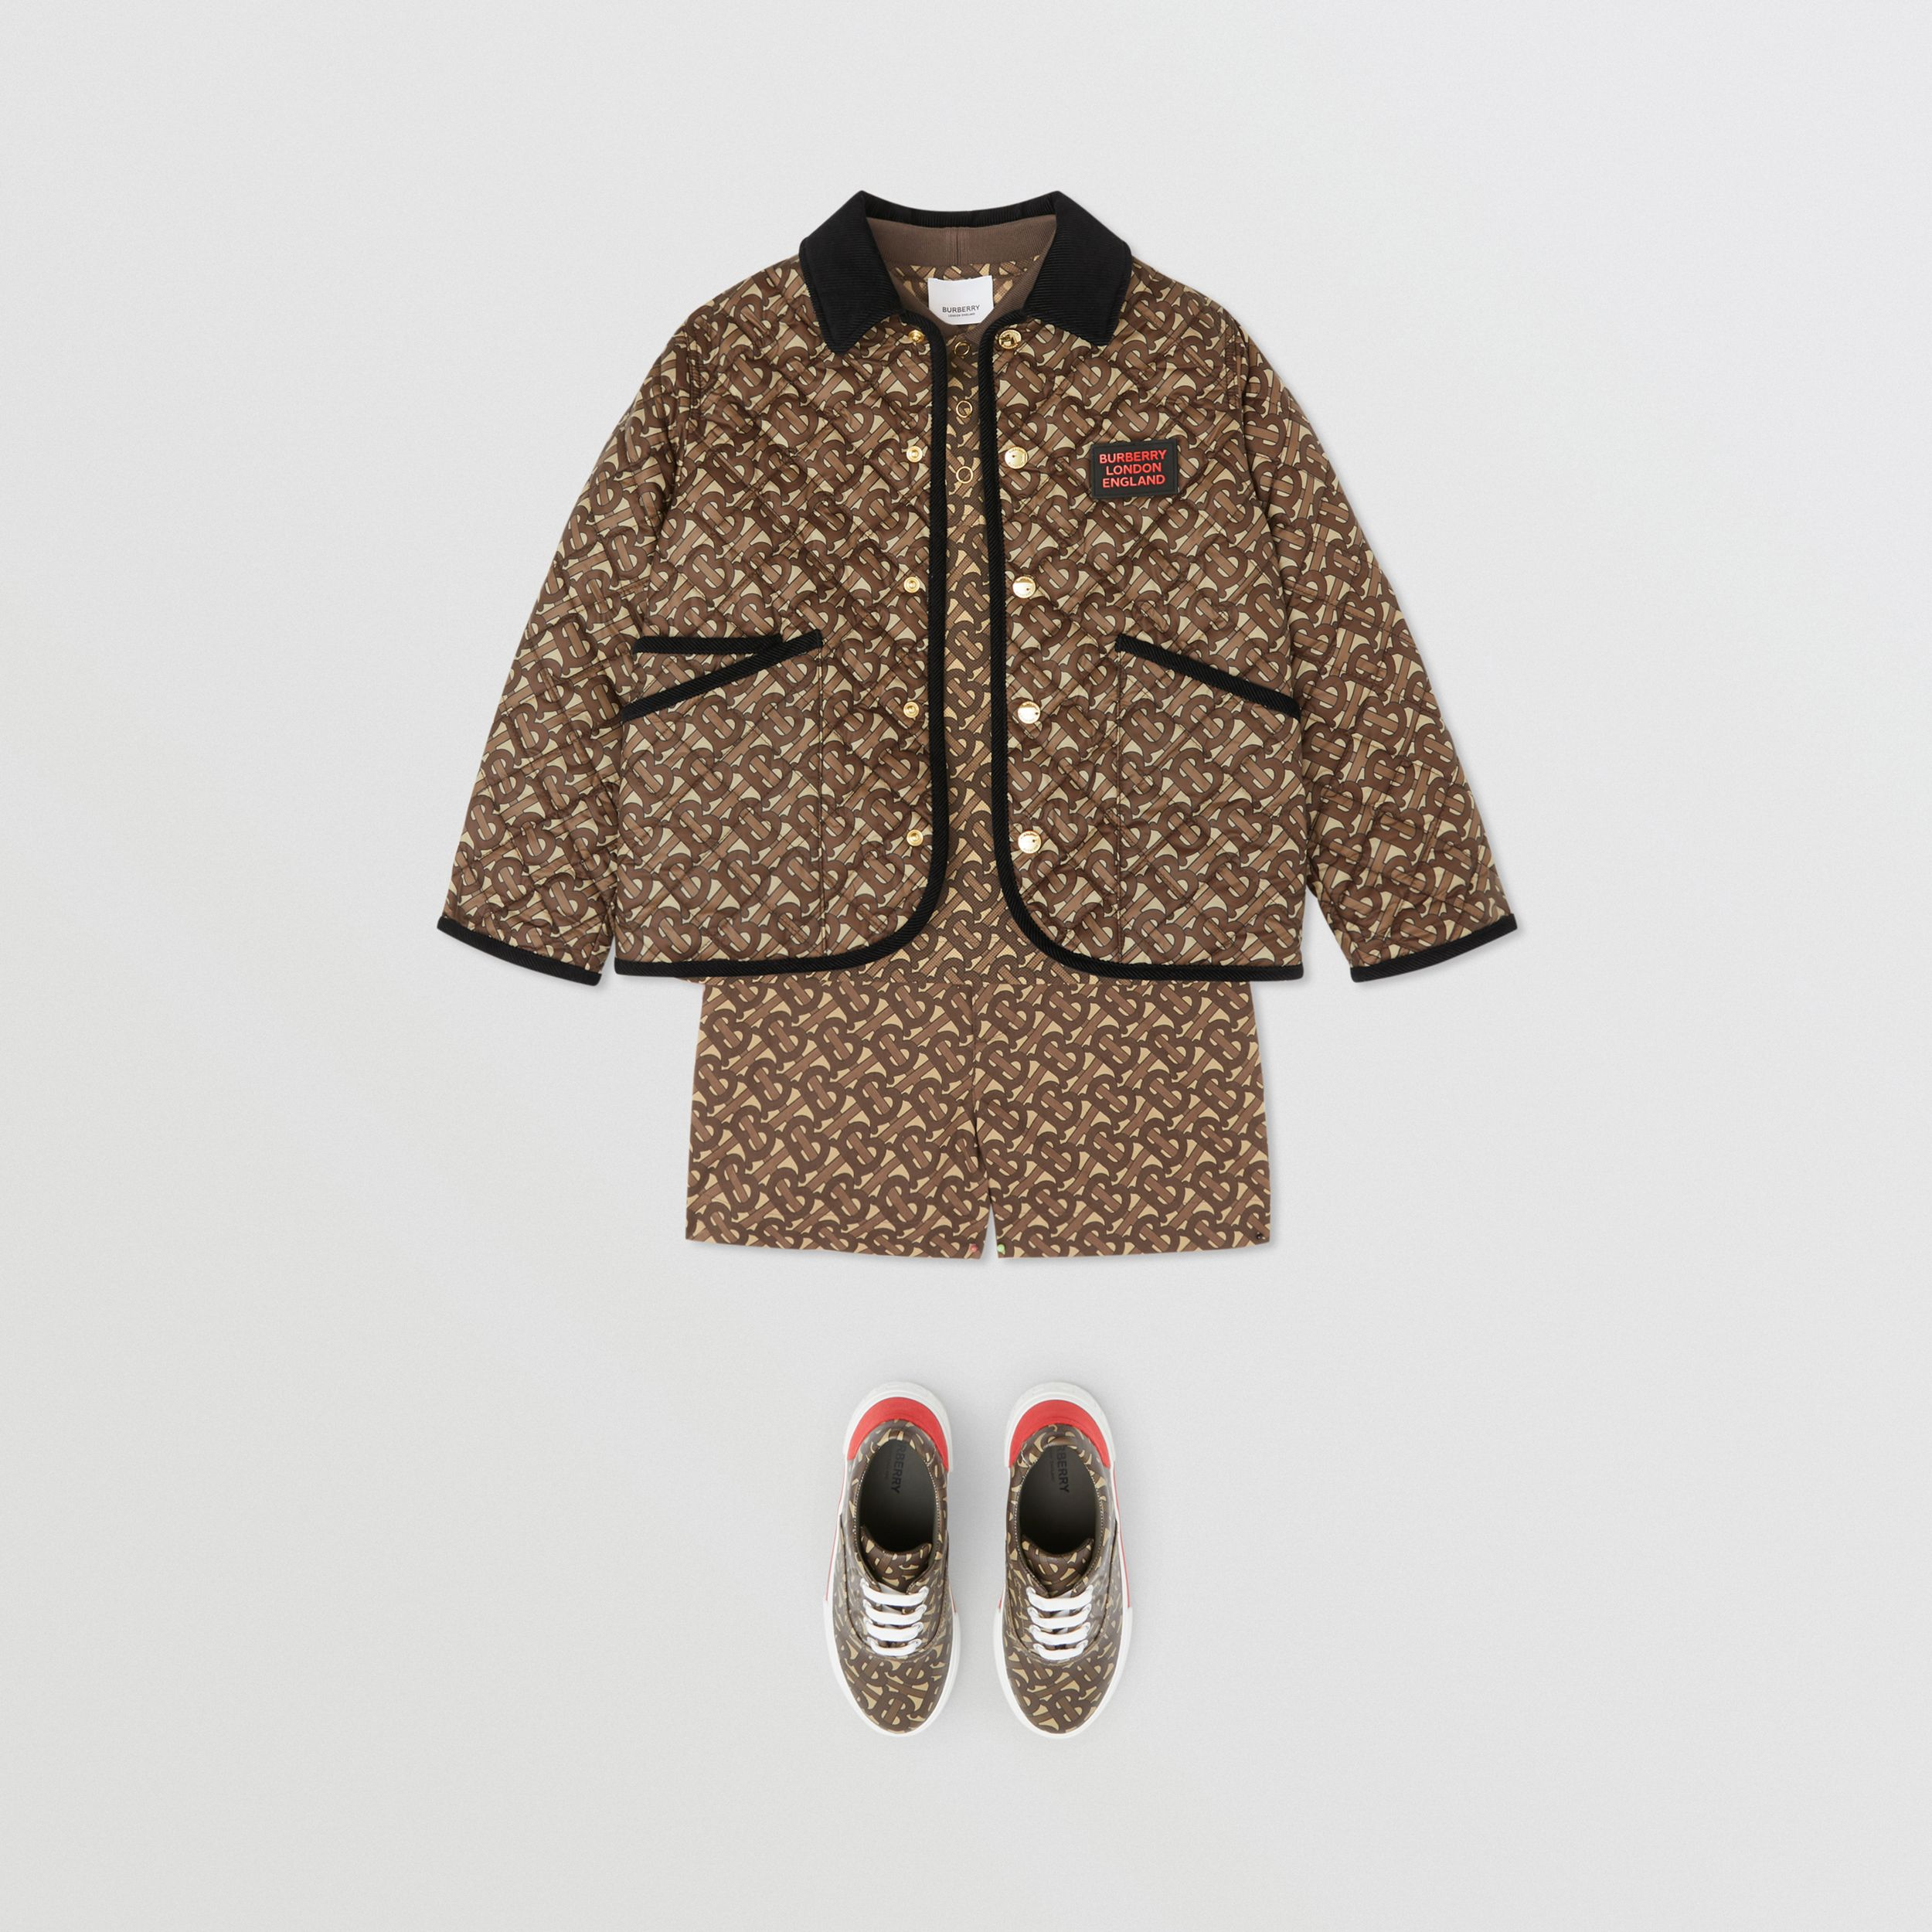 Monogram Print Diamond Quilted Jacket in Bridle Brown | Burberry - 3